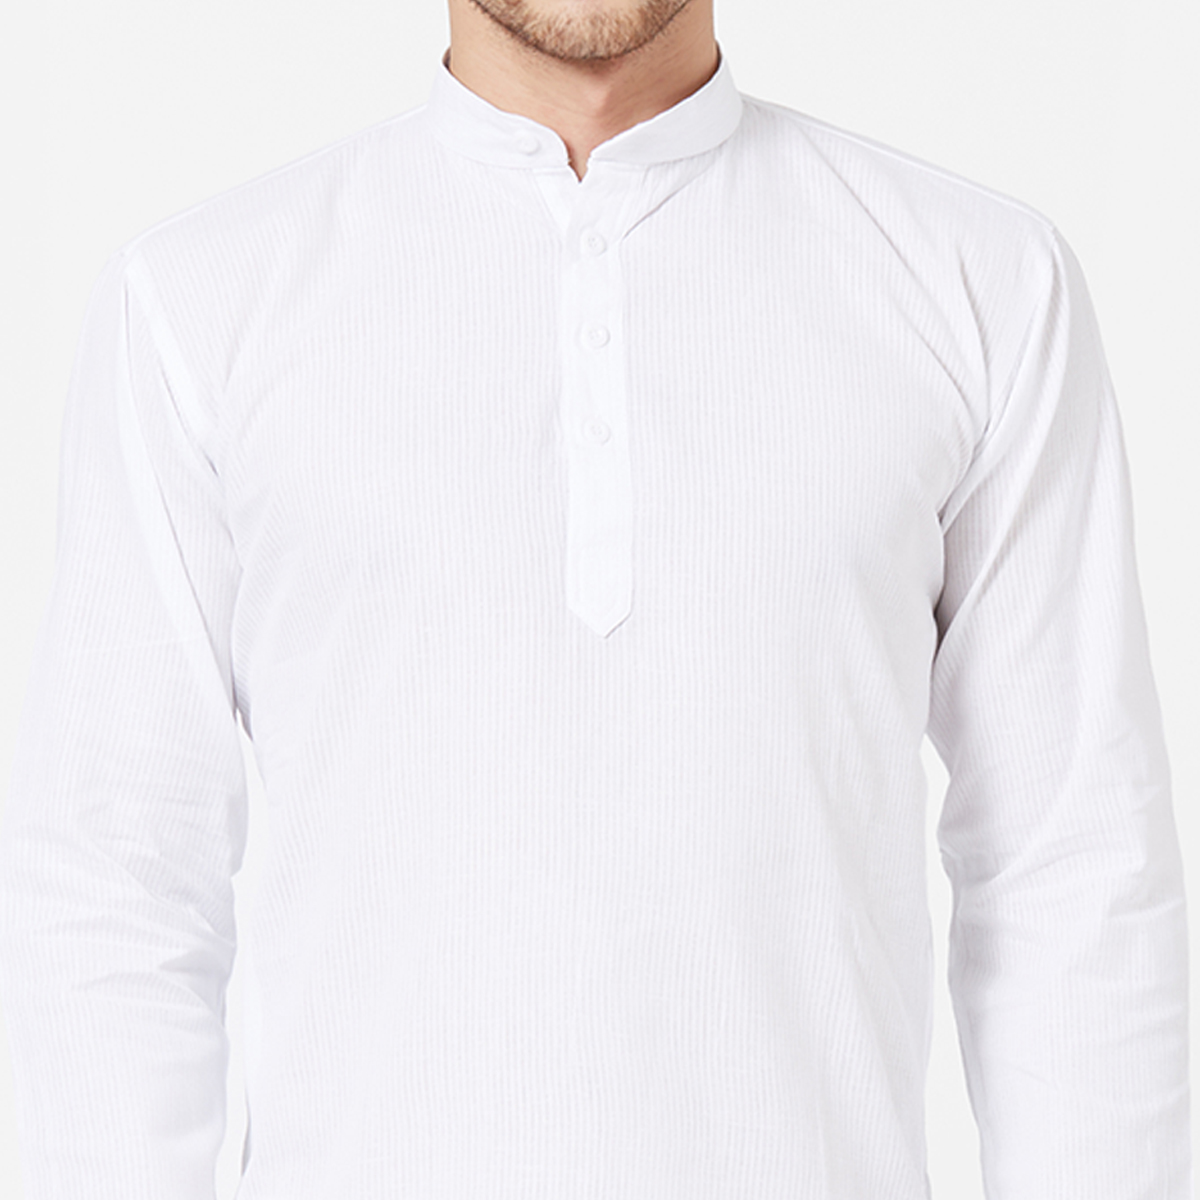 Classy White Colored Festive Wear Cotton Kurta